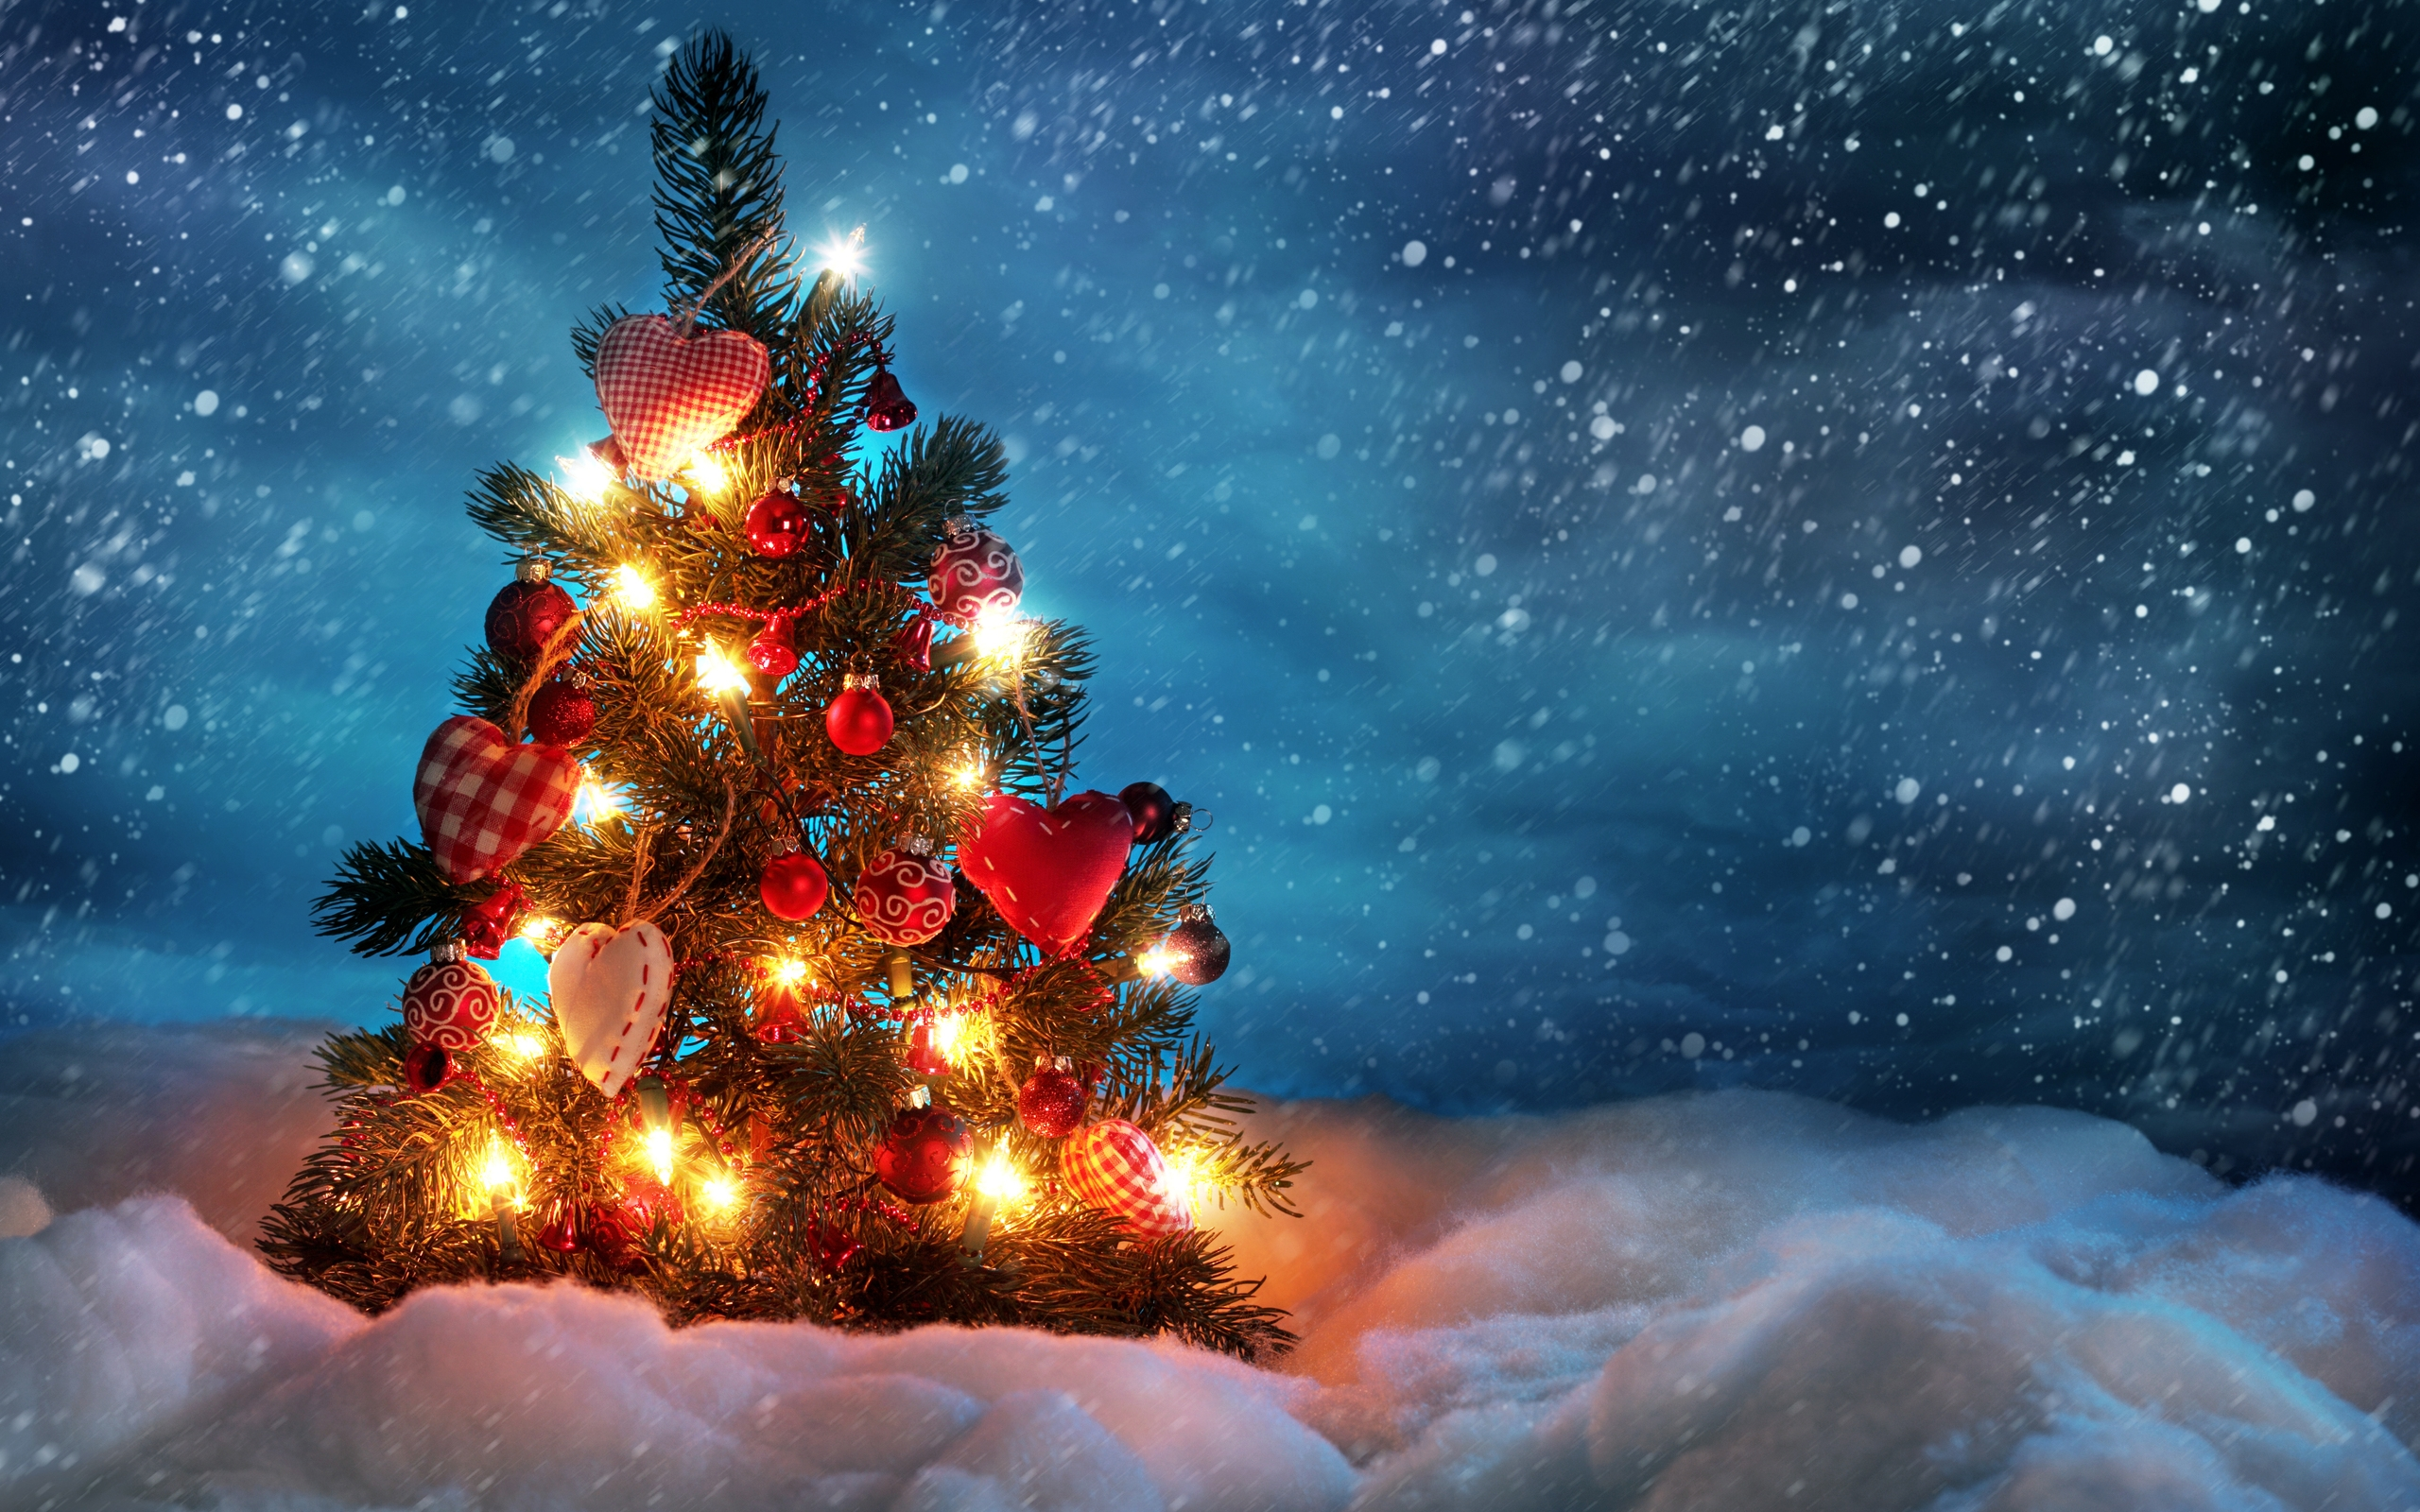 download 3d christmas wallpapers free which is under the 3d wallpapers ...